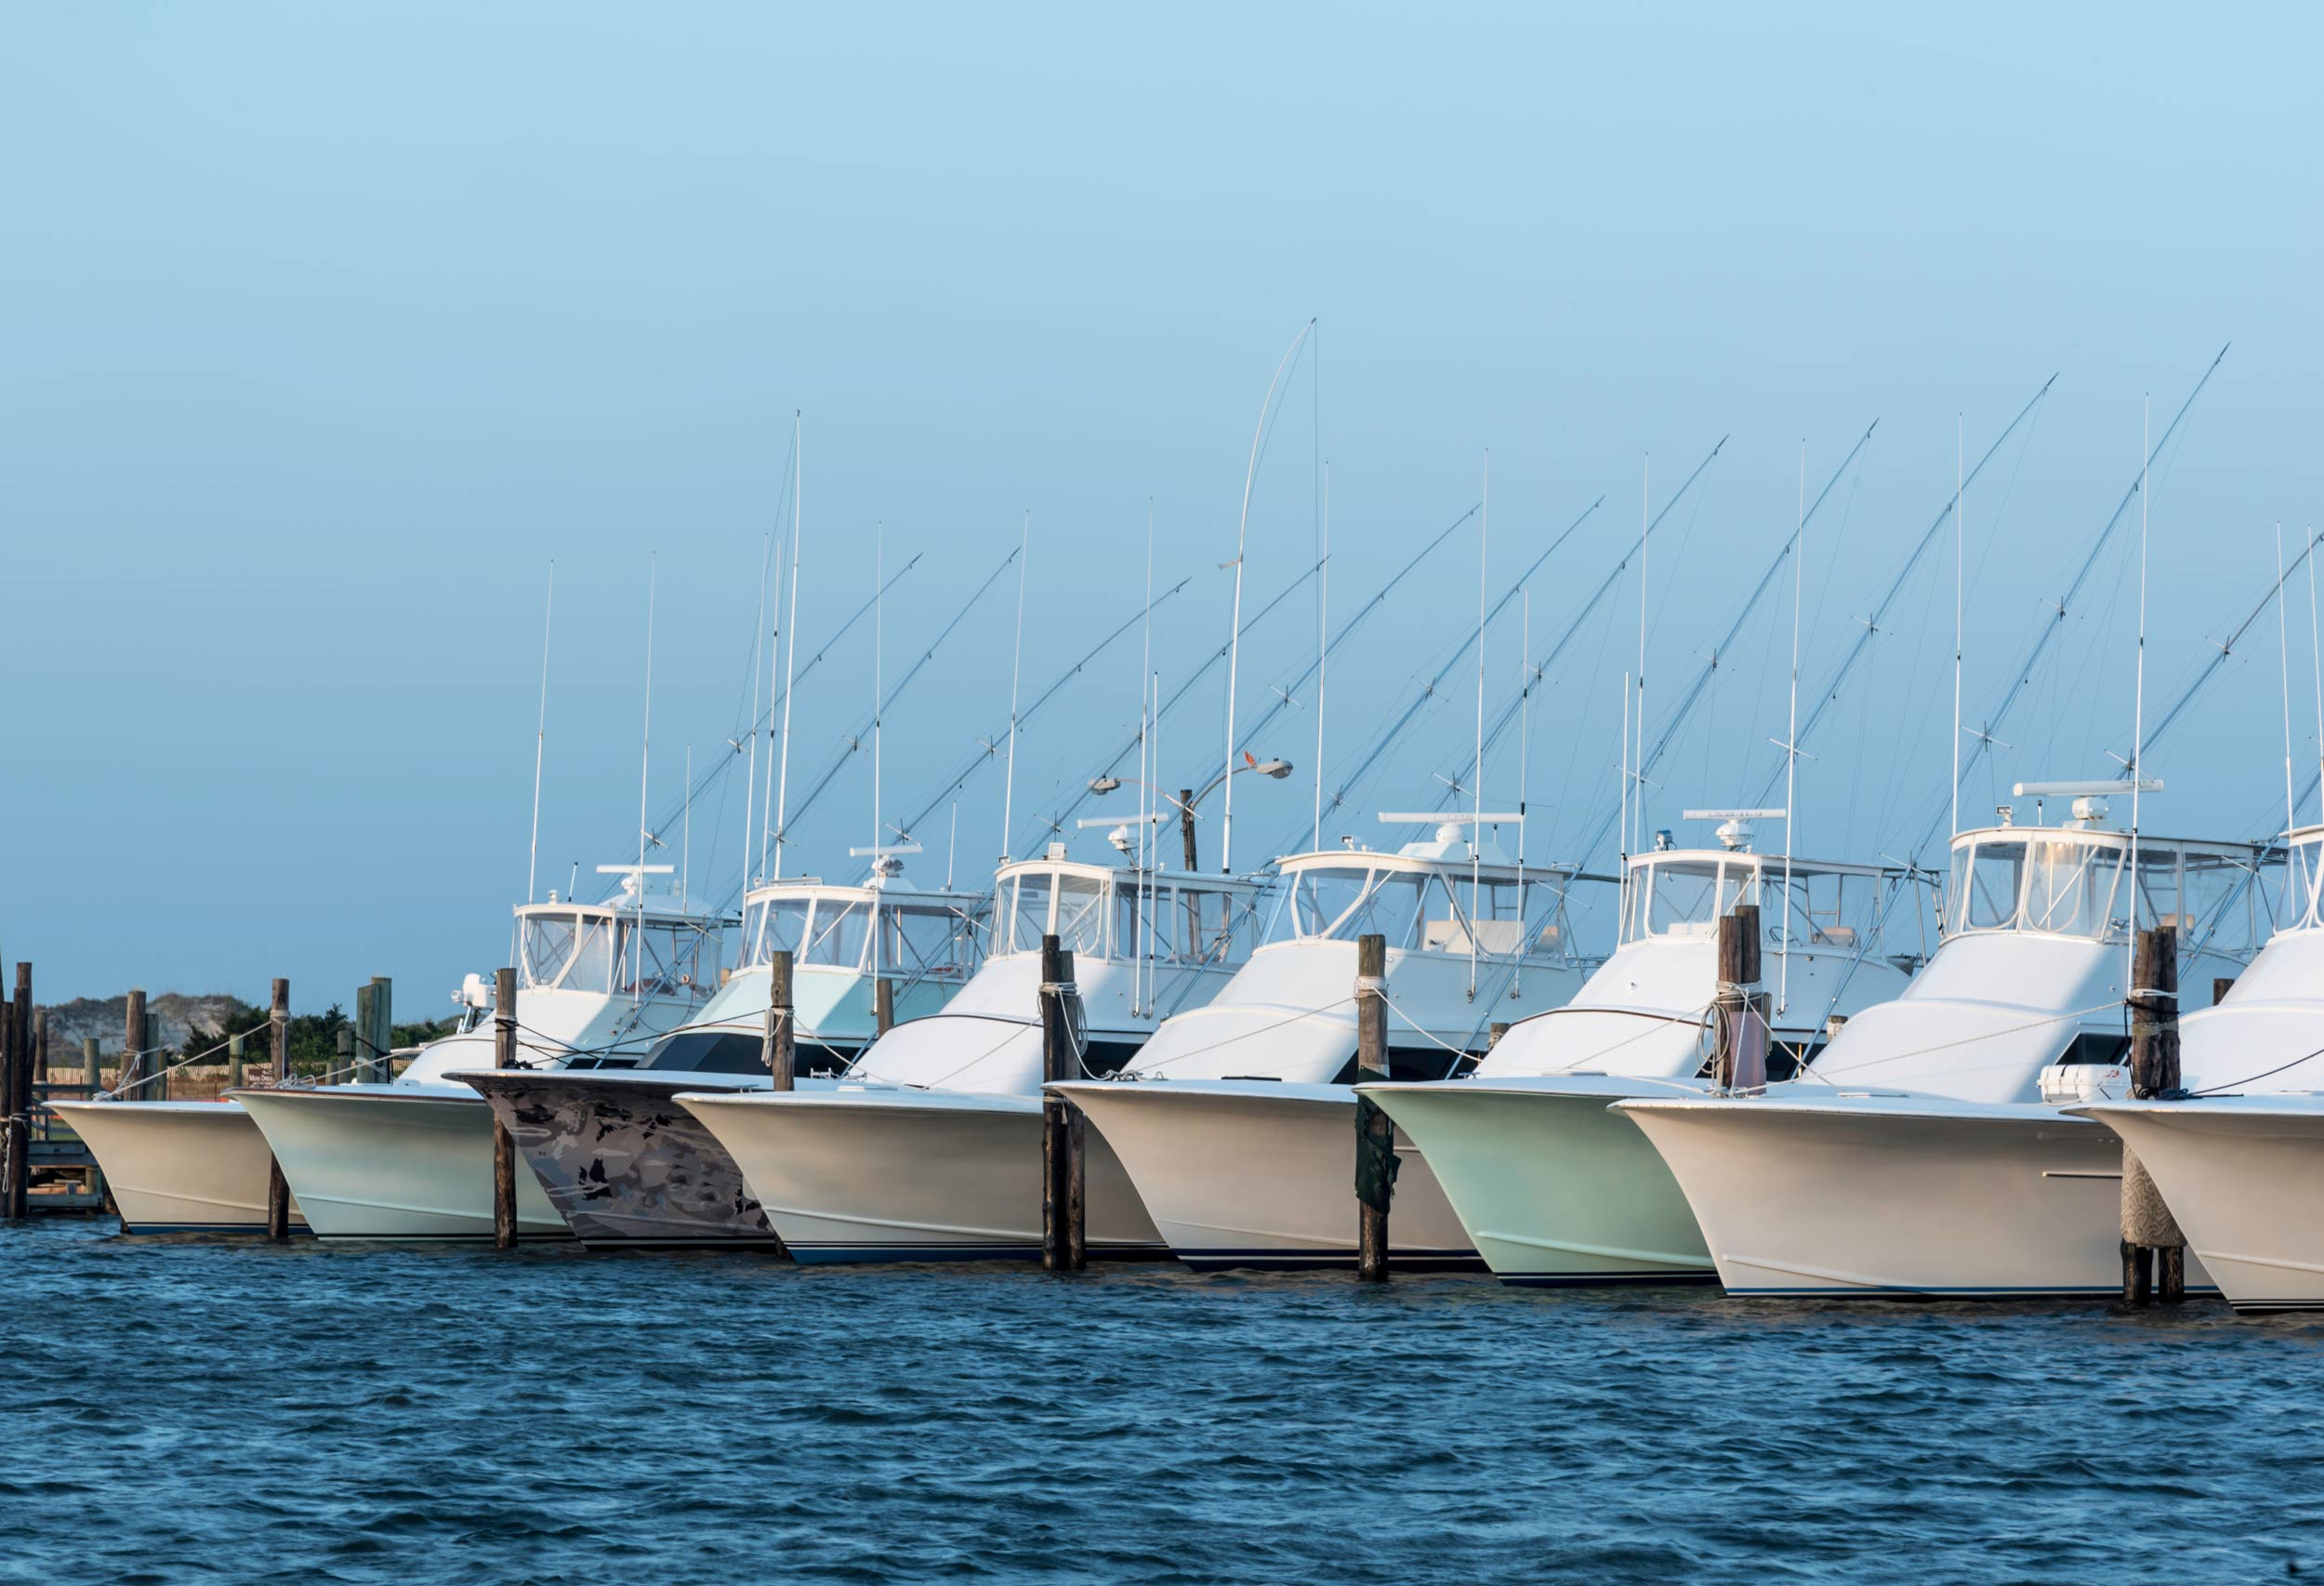 Fishing boats lined in a marine, ready for a fishing tournament